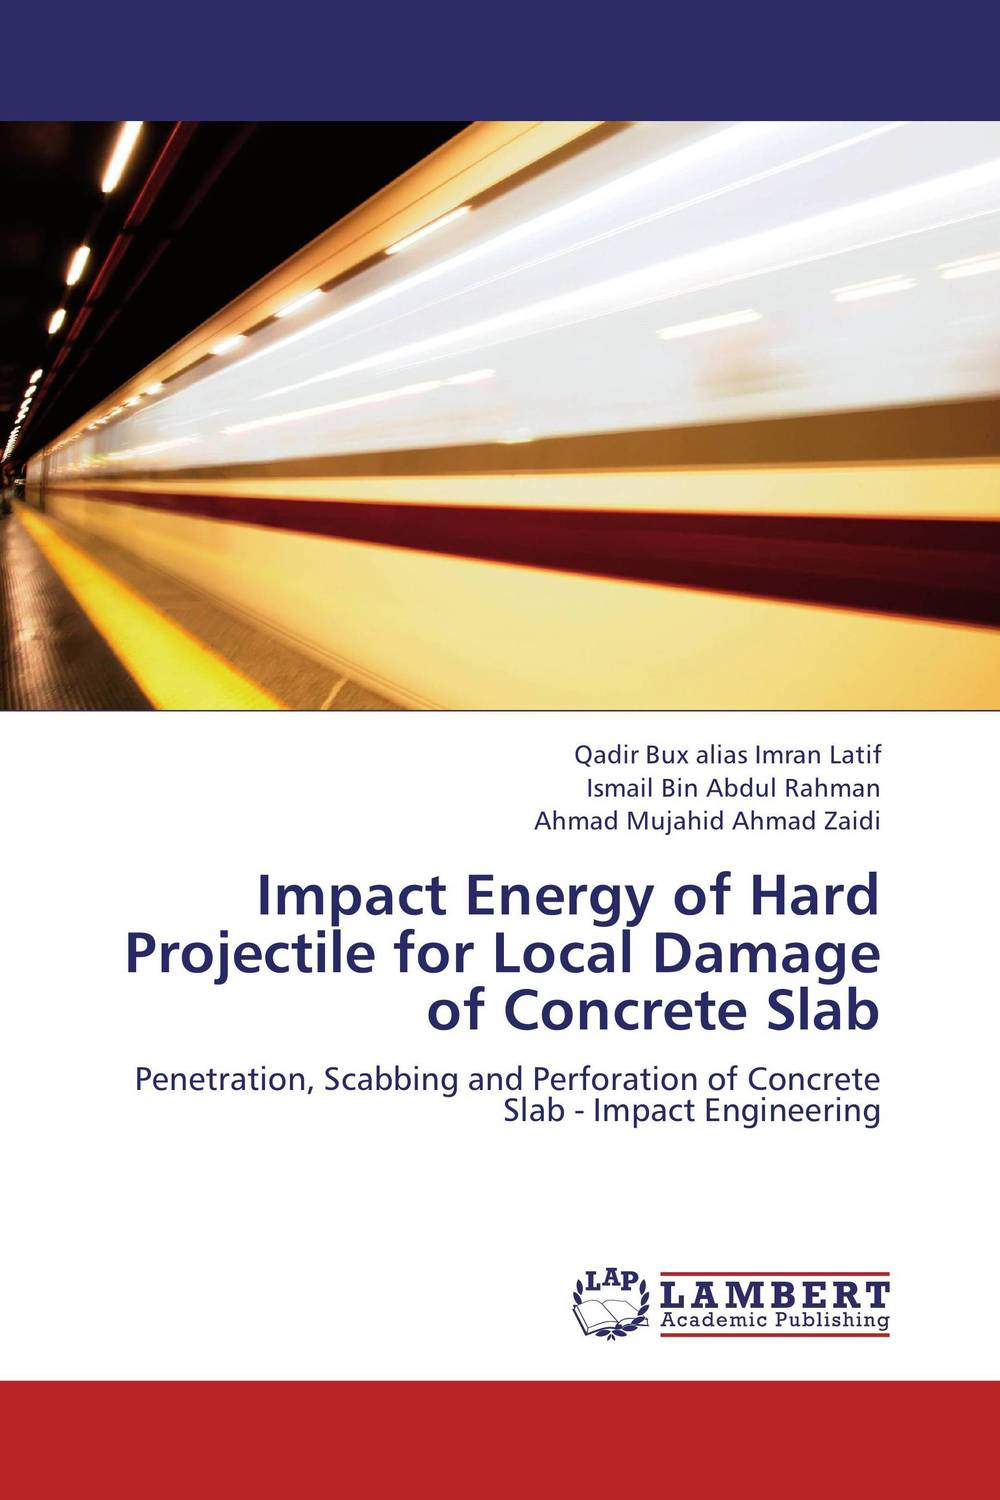 Impact Energy of Hard Projectile for Local Damage of Concrete Slab rasoul moradi and hamid lankarani impact dynamics of mechanical systems and structures